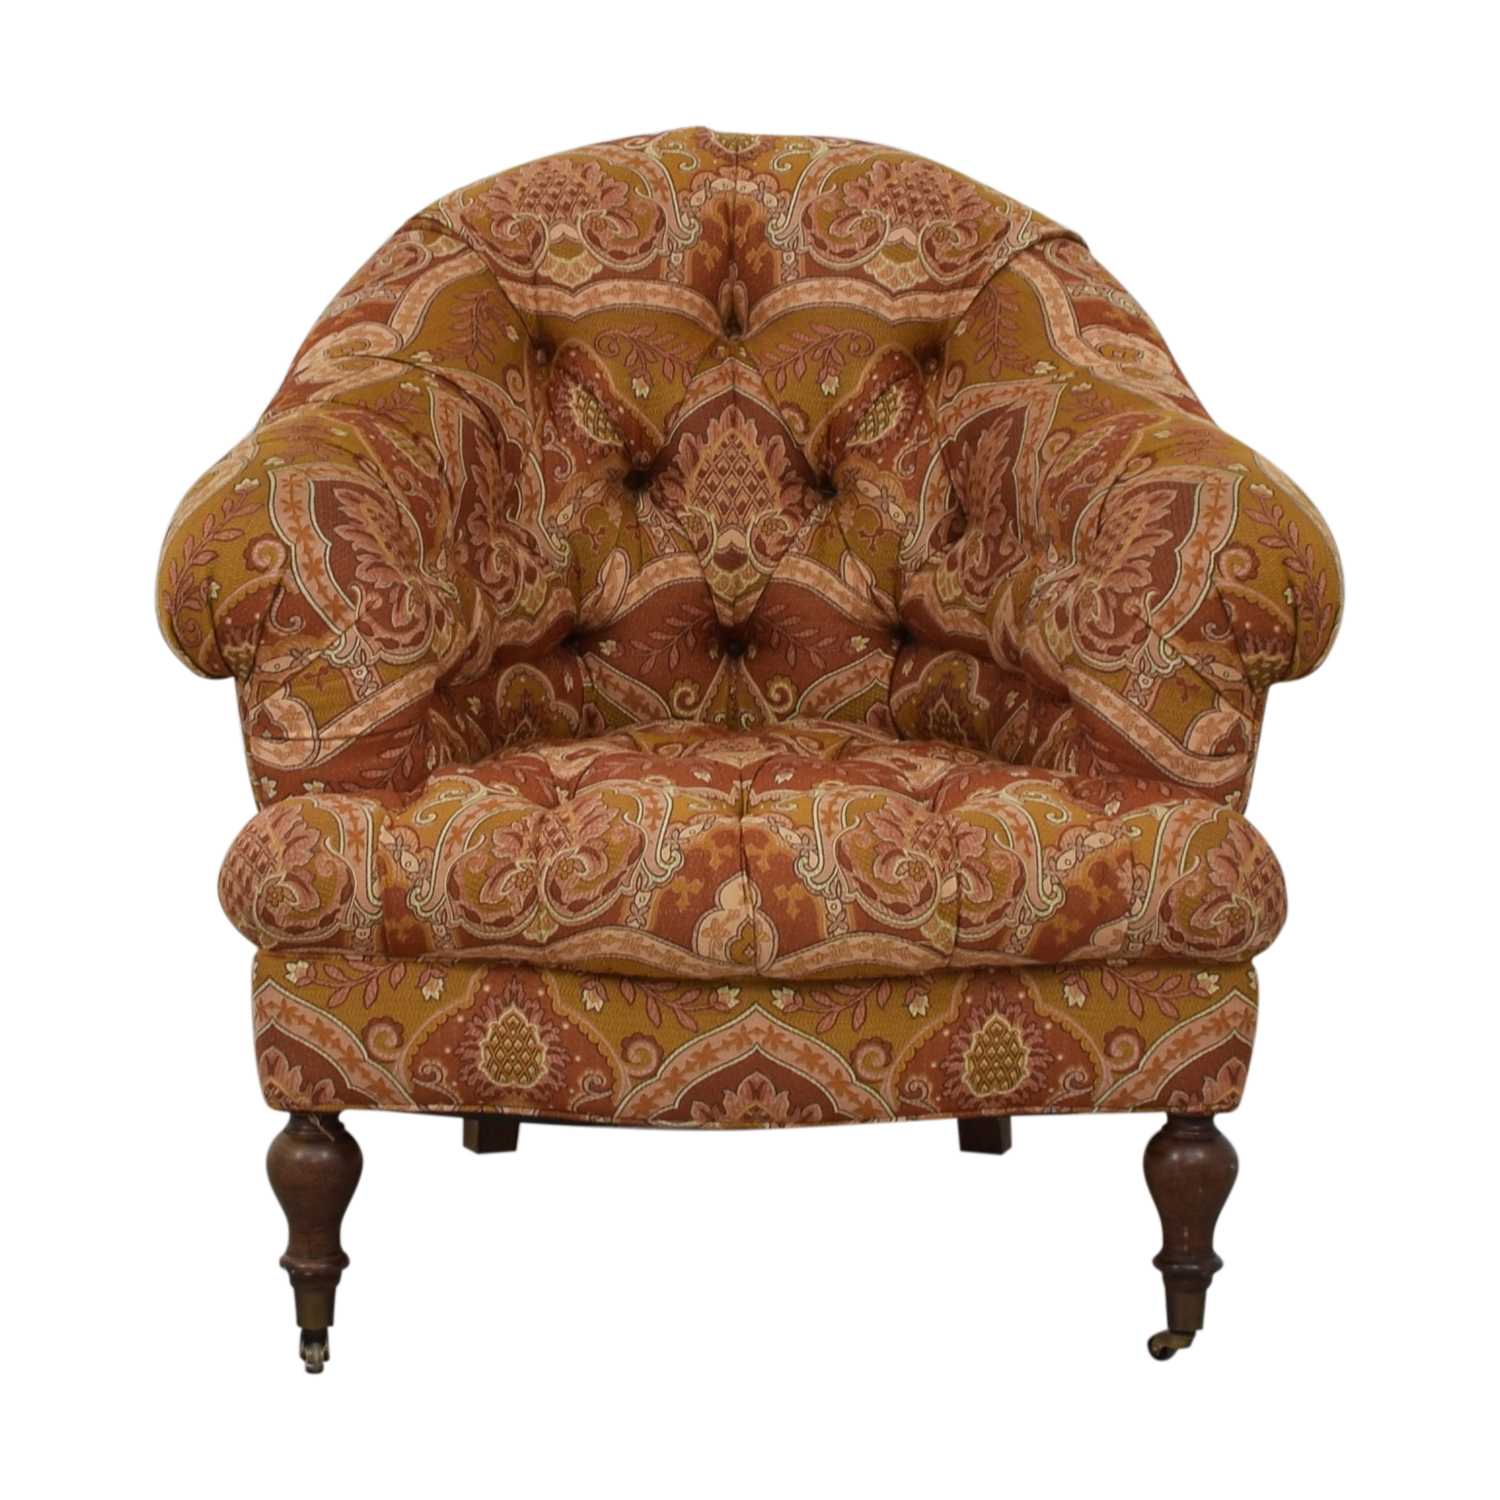 Paisley Floral Upholstered Accent Chair with Castors price